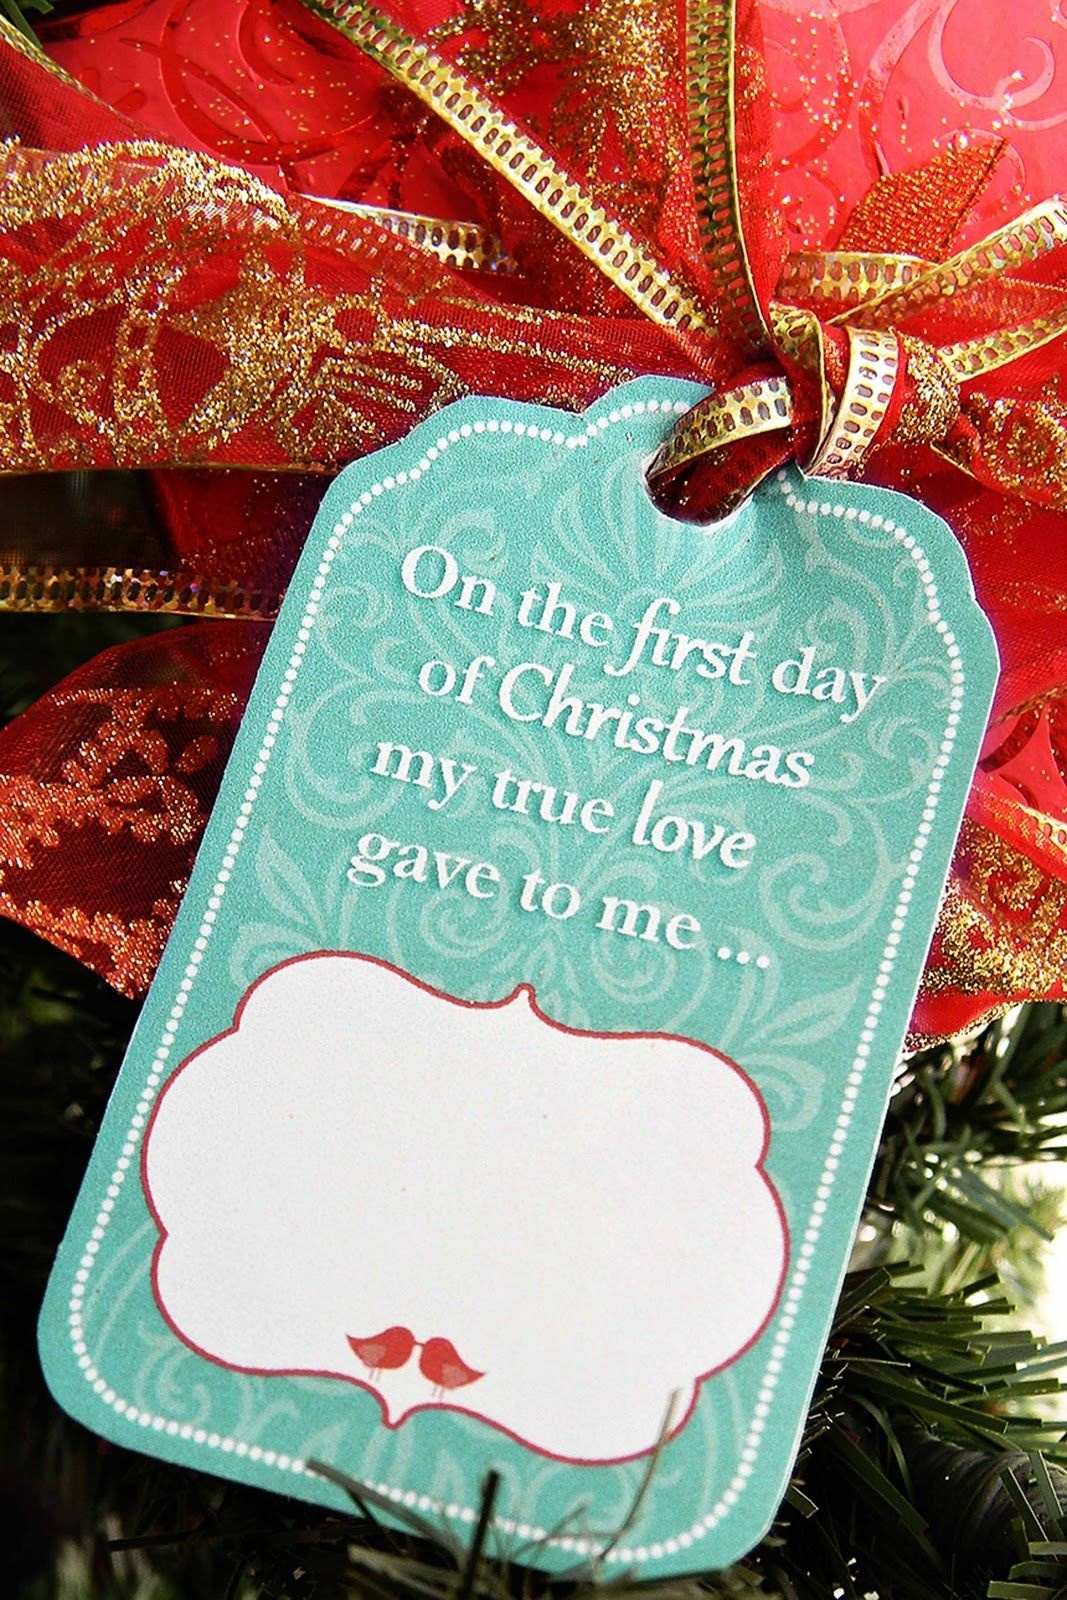 12 Days Of Christmas For Husband With Free Printable Gift Tags. Did - Free Printable 12 Days Of Christmas Gift Tags